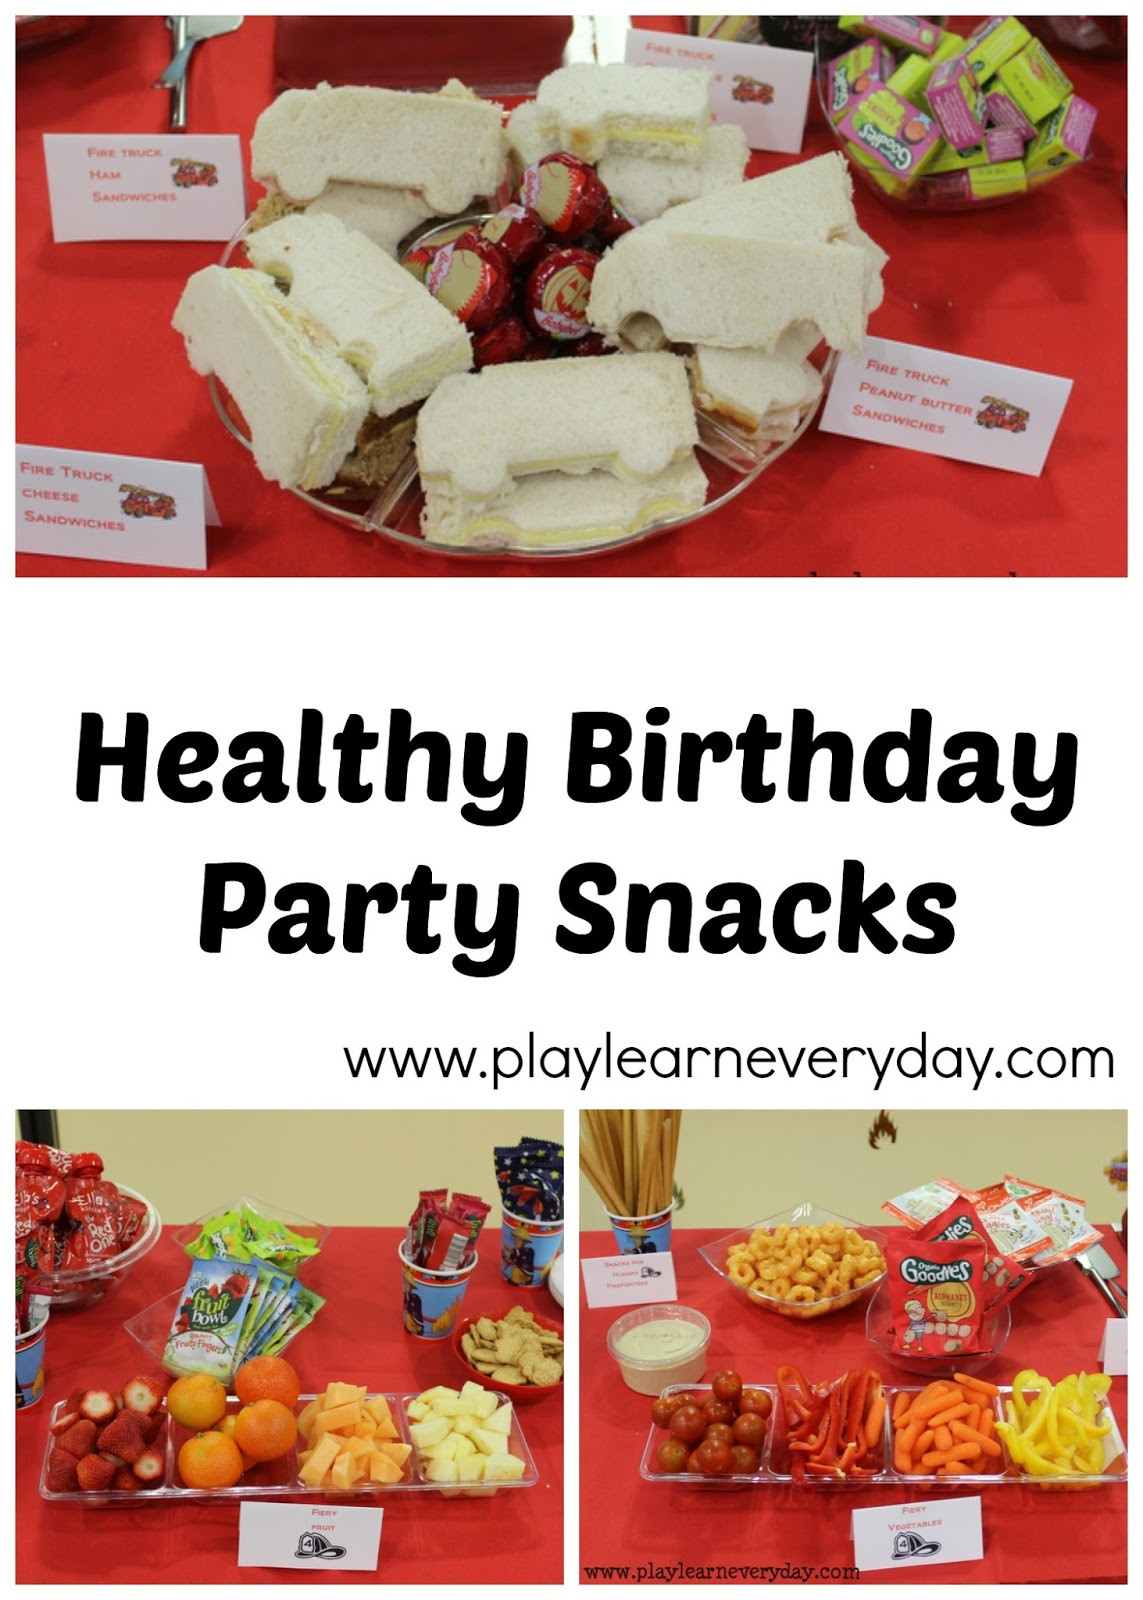 Healthy Birthday Party Snacks  Healthy Birthday Party Snacks Play and Learn Every Day